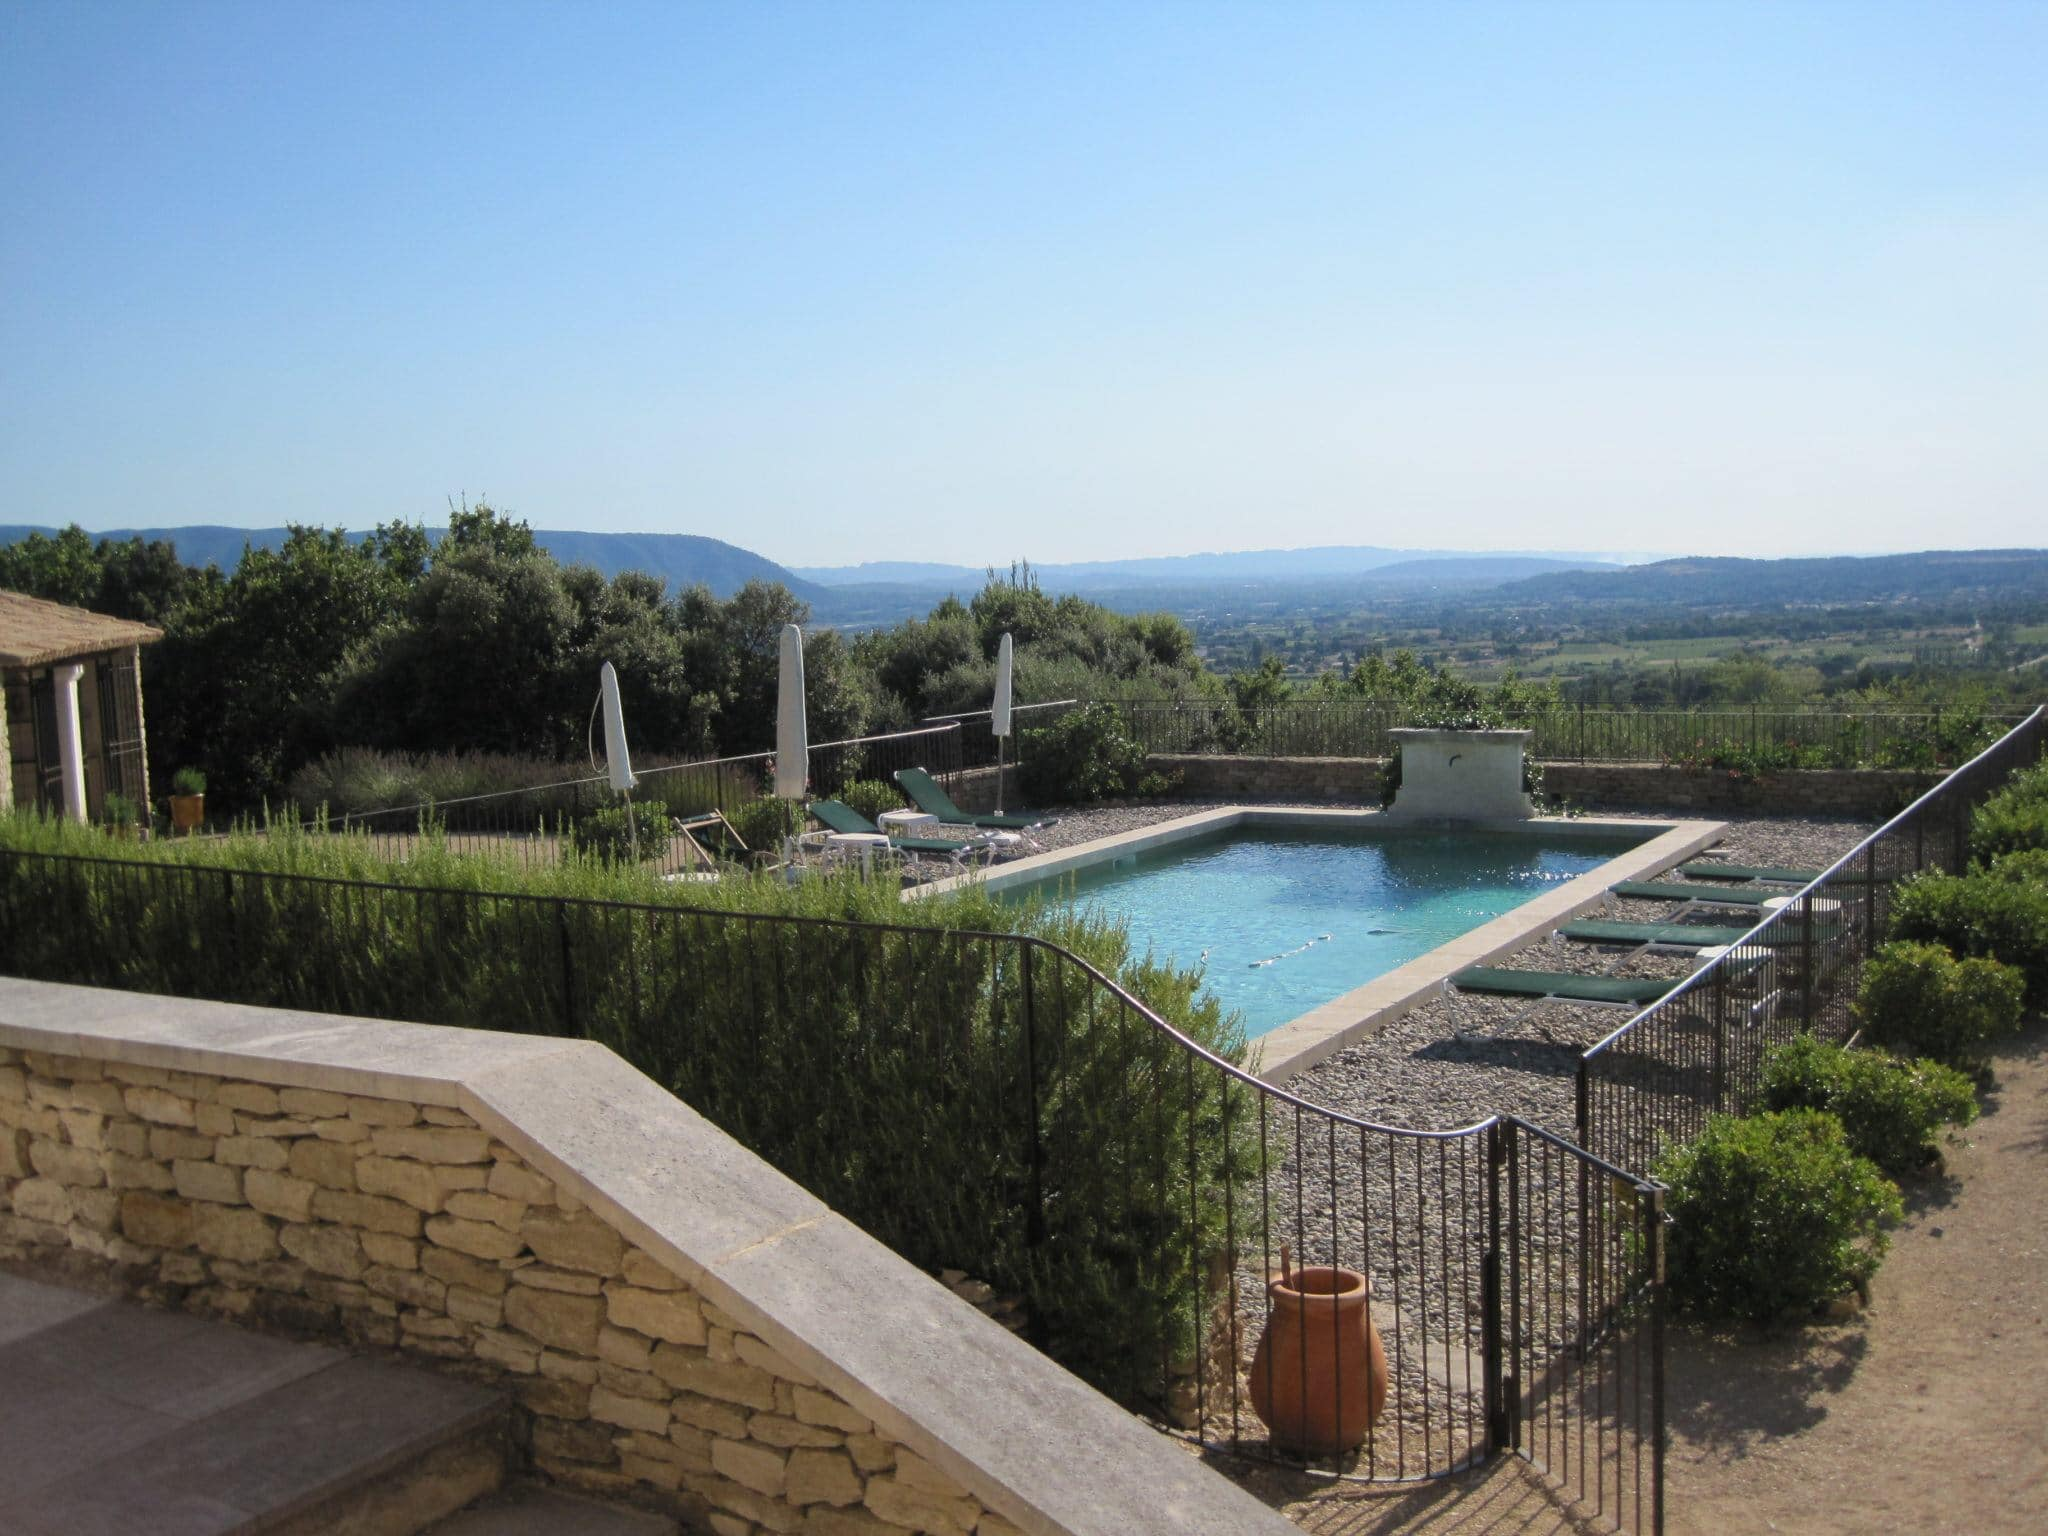 Backyard of villa in Gordes